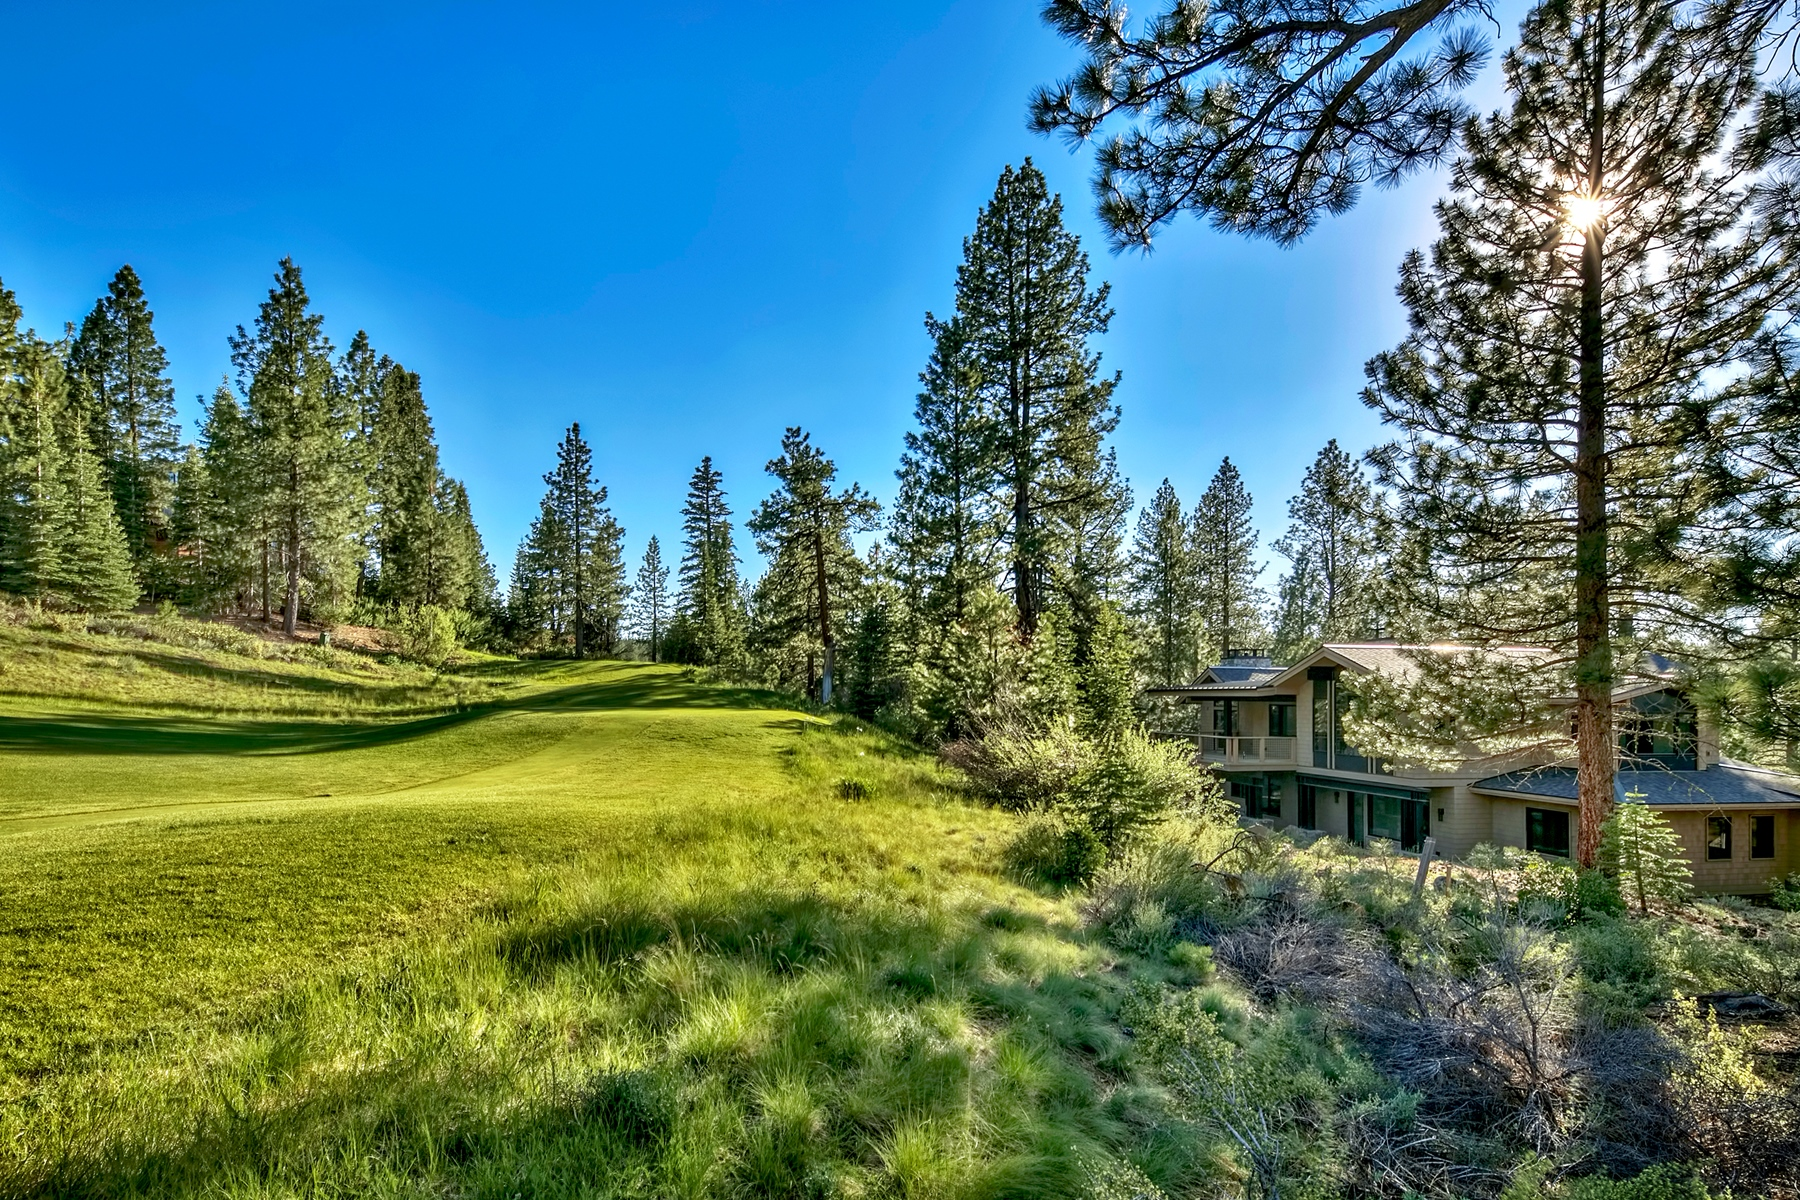 Additional photo for property listing at 13212 Snowshoe Thompson, Truckee, CA 13212 Snowshoe Thompson Circle Truckee, California 96161 Estados Unidos